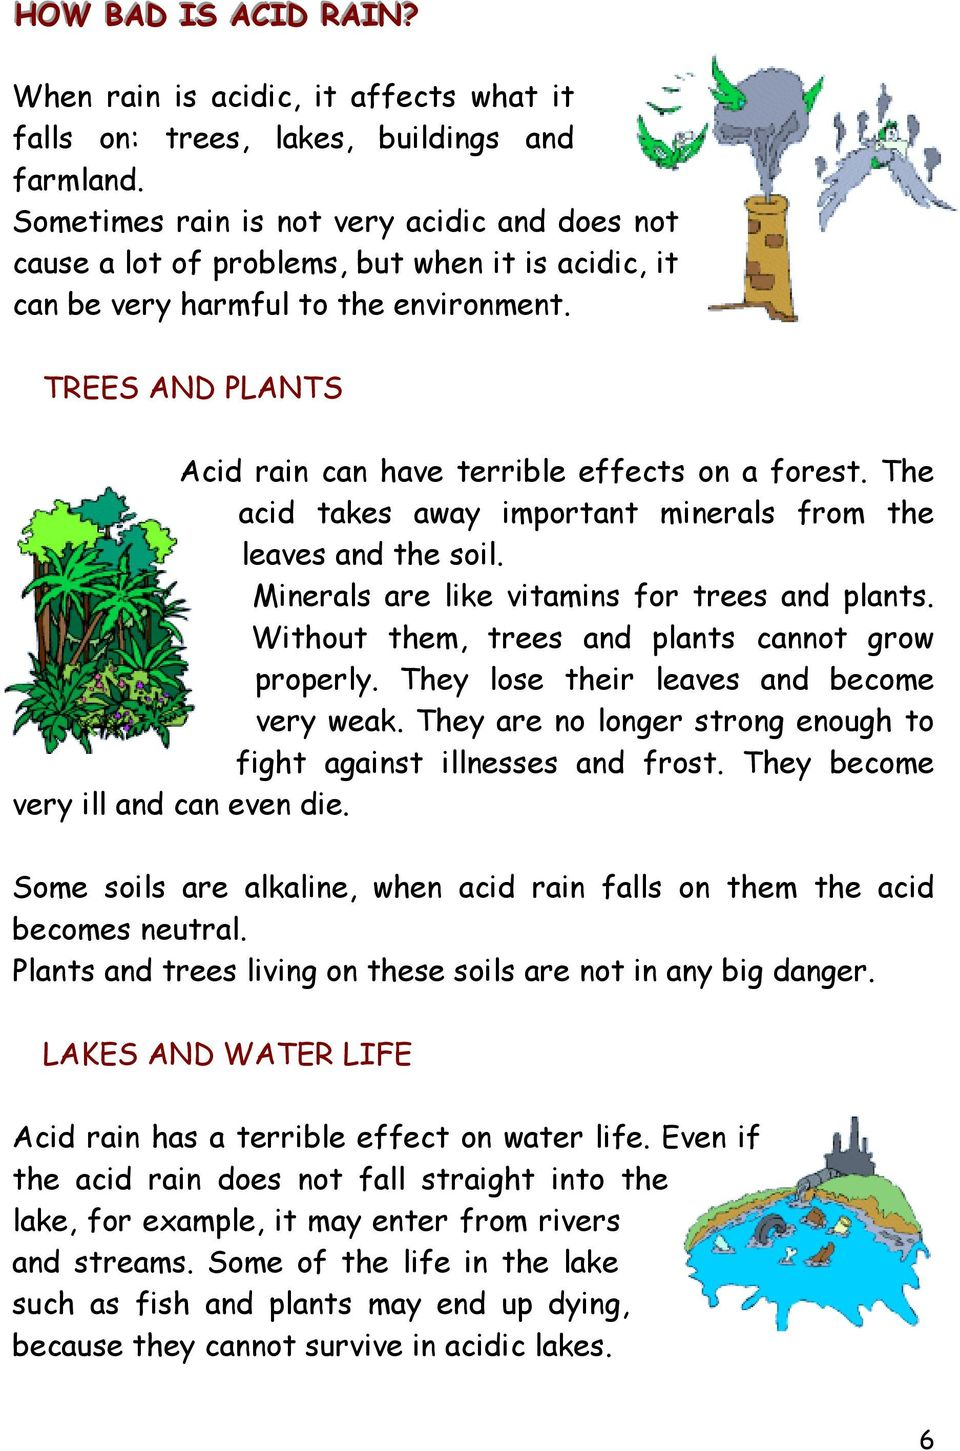 TREES AND PLANTS Acid rain can have terrible effects on a forest. The acid takes away important minerals from the leaves and the soil. Minerals are like vitamins for trees and plants.